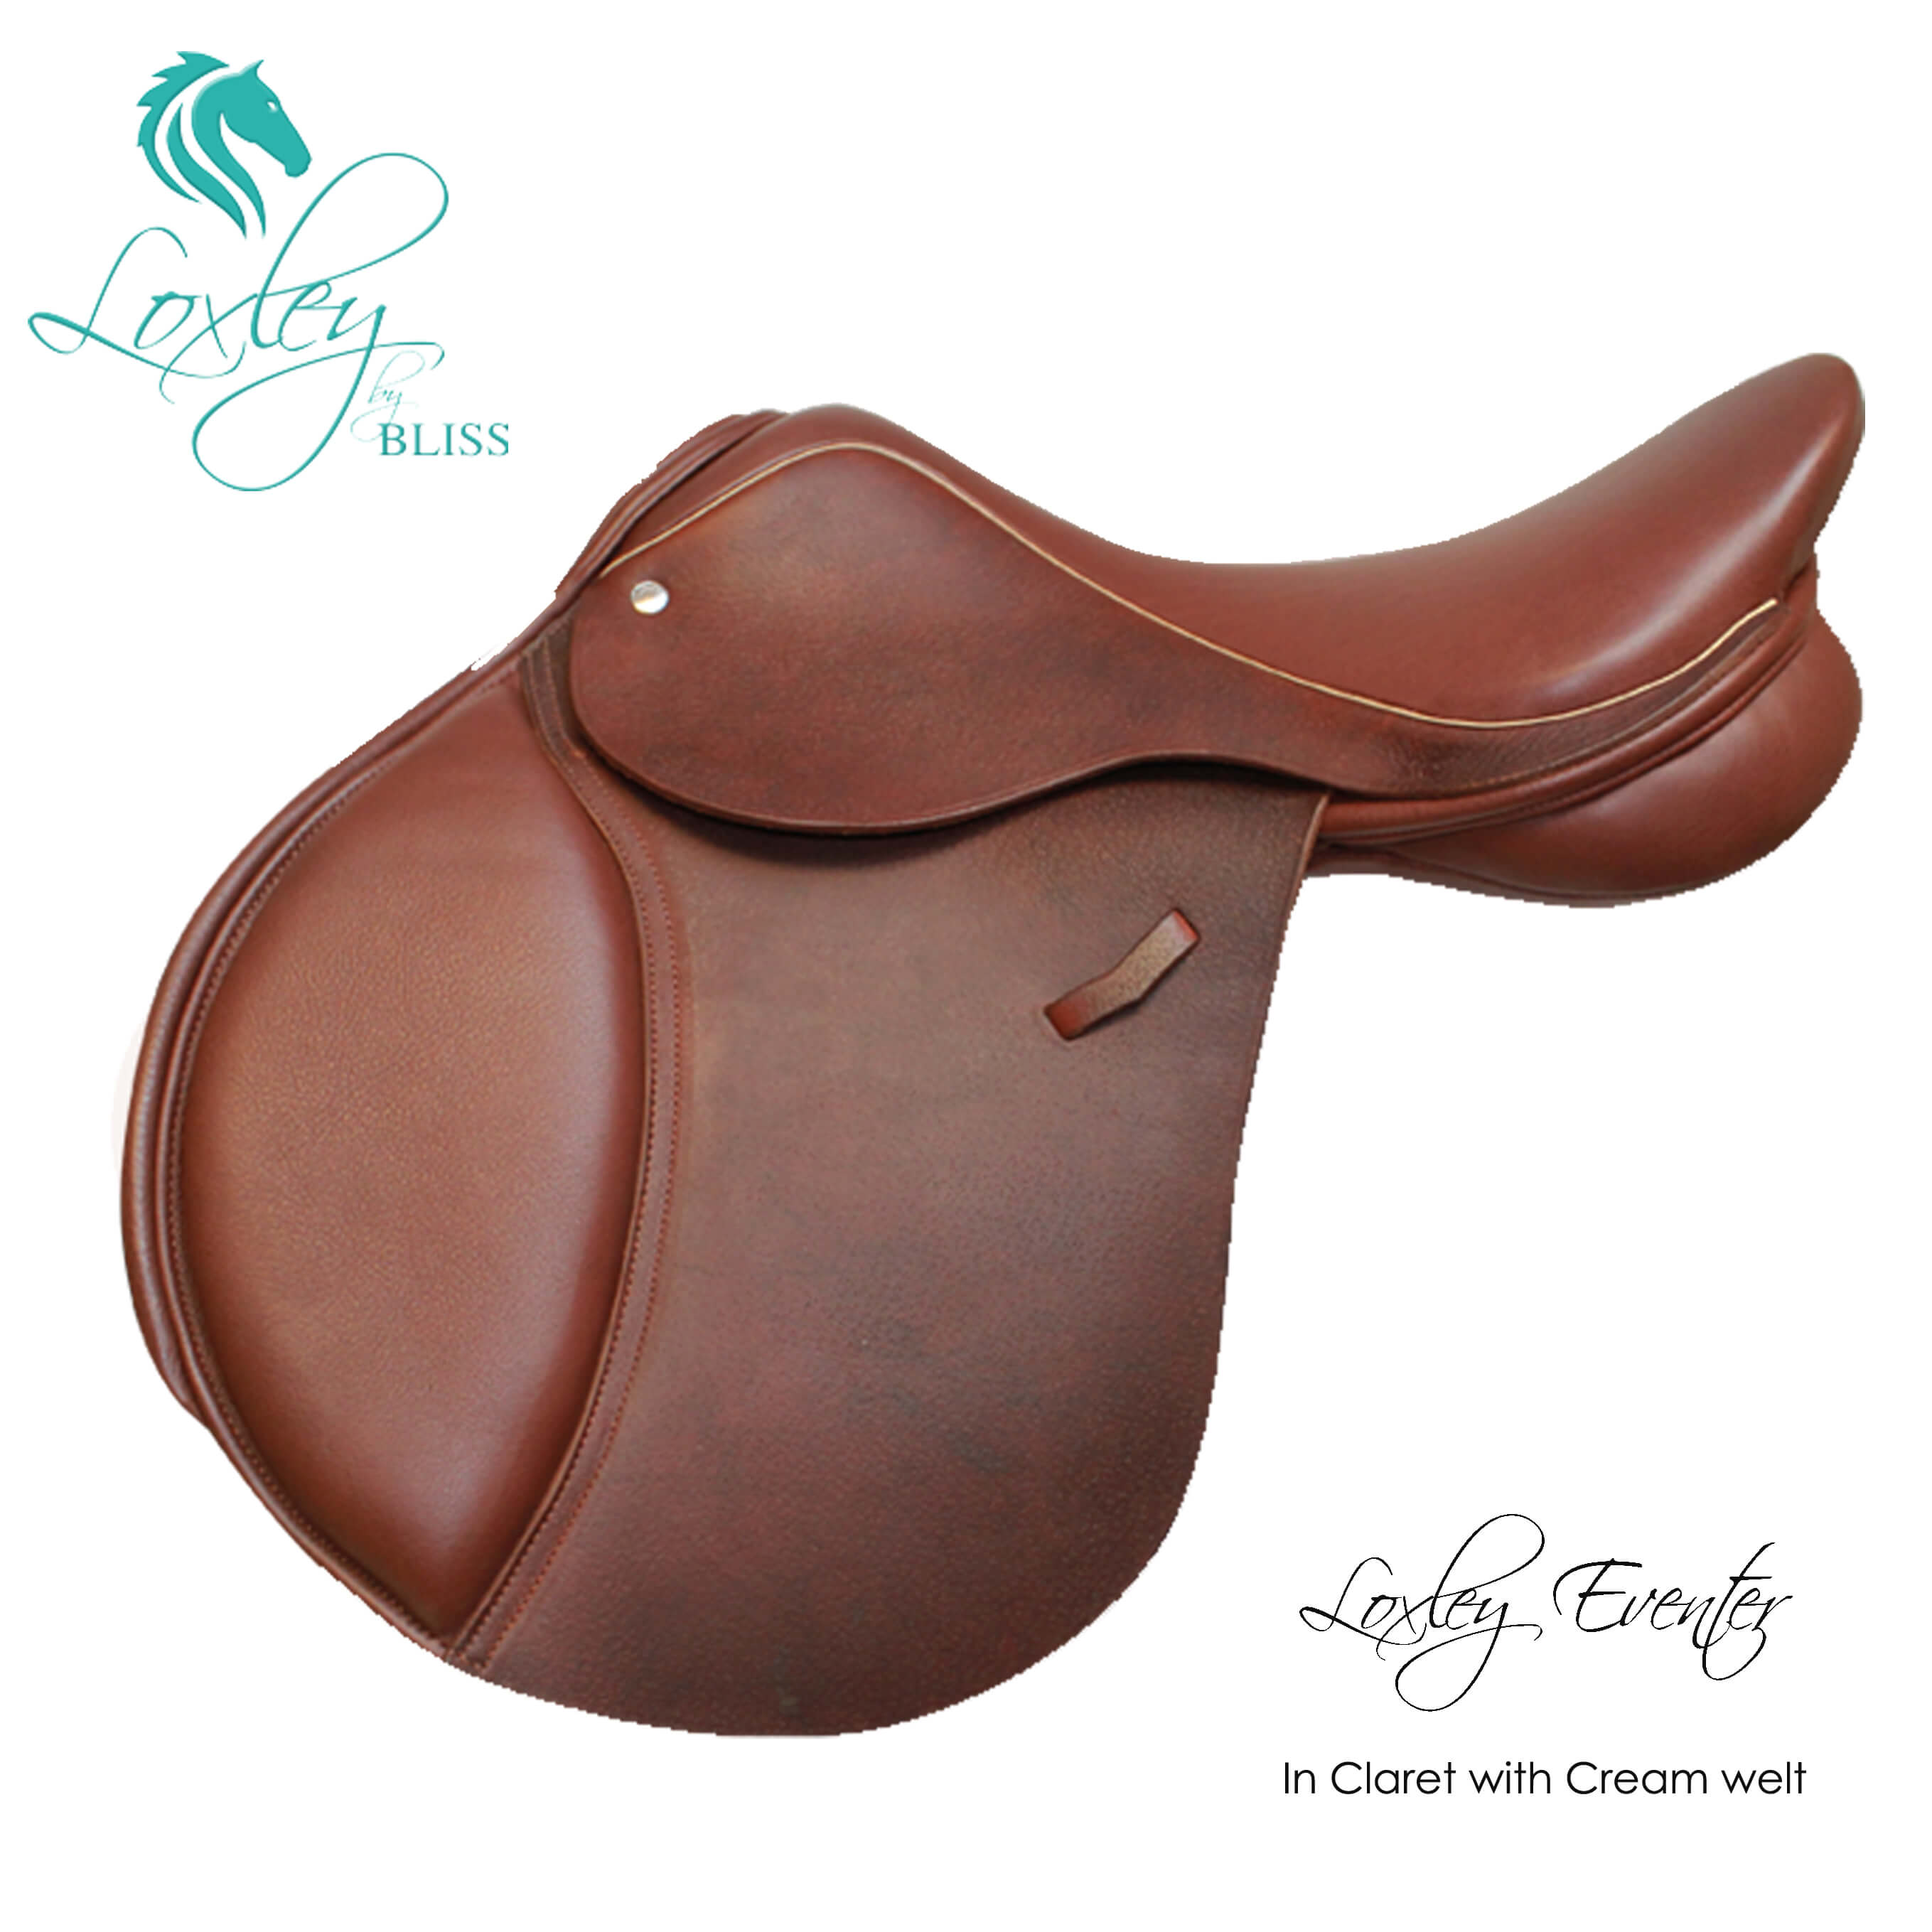 2 Loxley eventer Claret cream welt